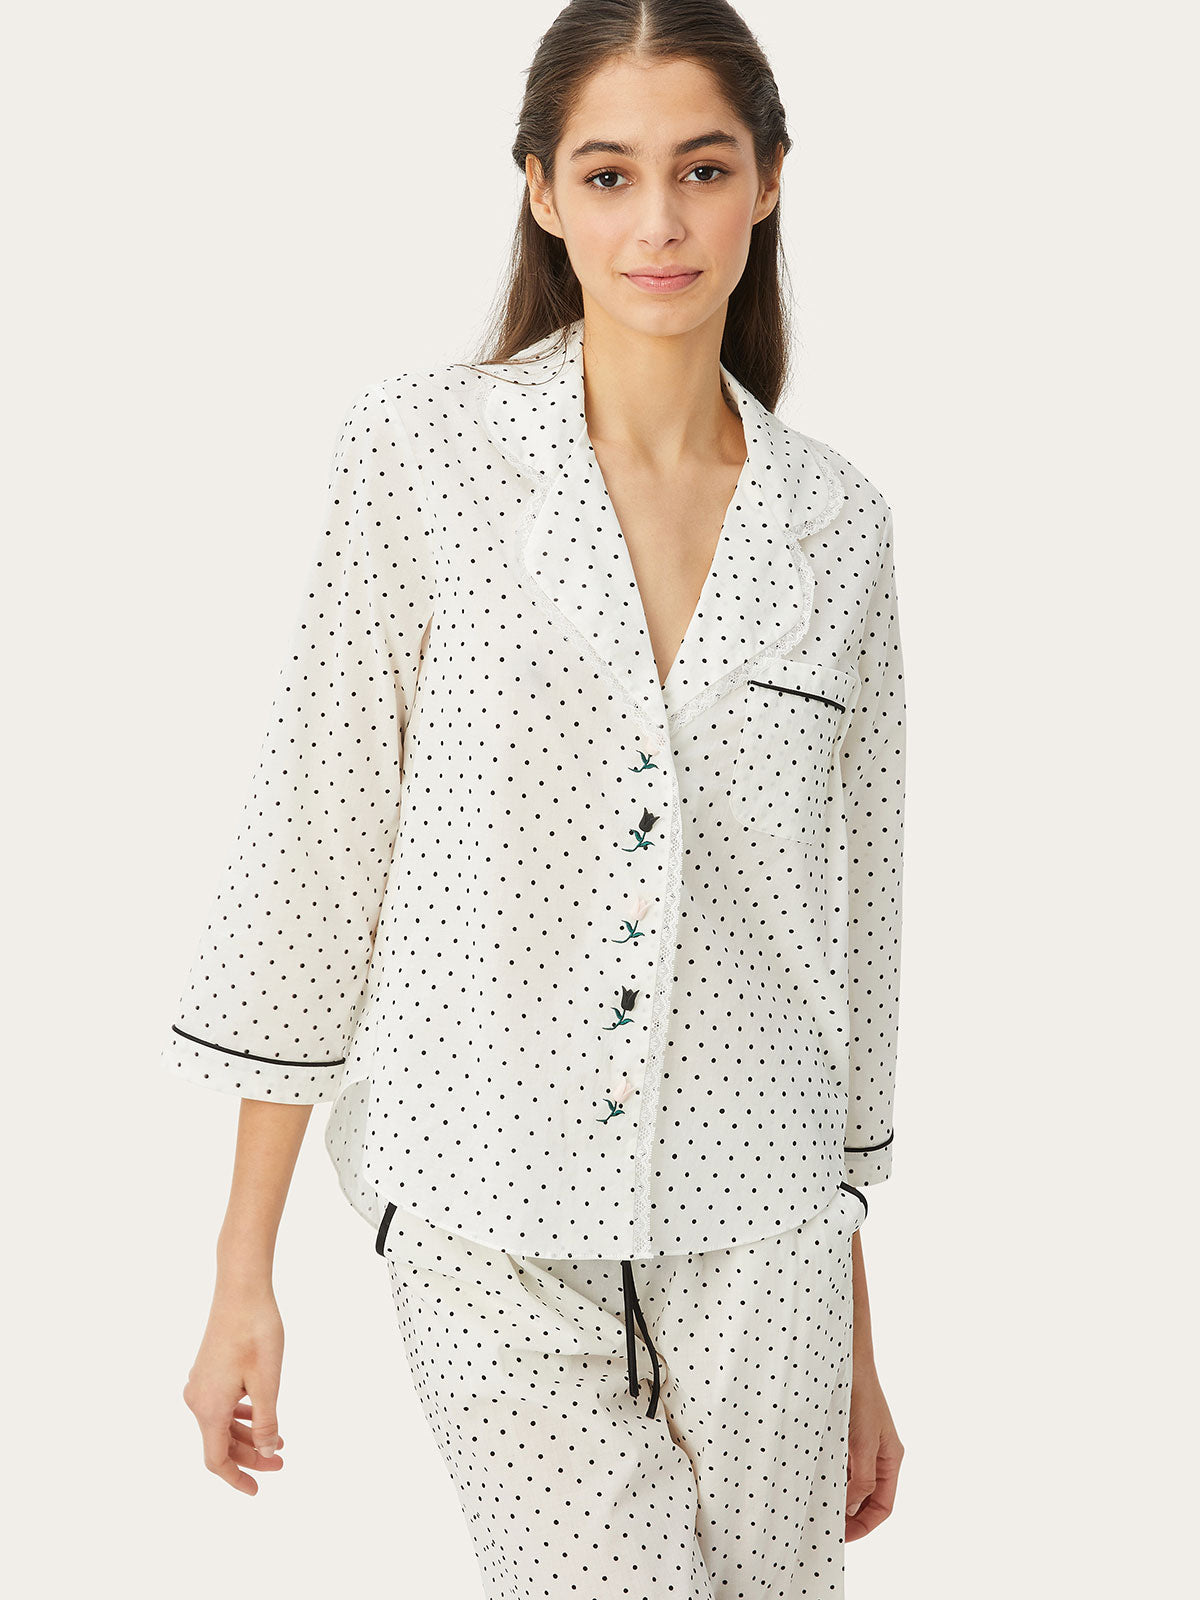 Kinsley Night Shirt in Primrose Dot By Morgan Lane